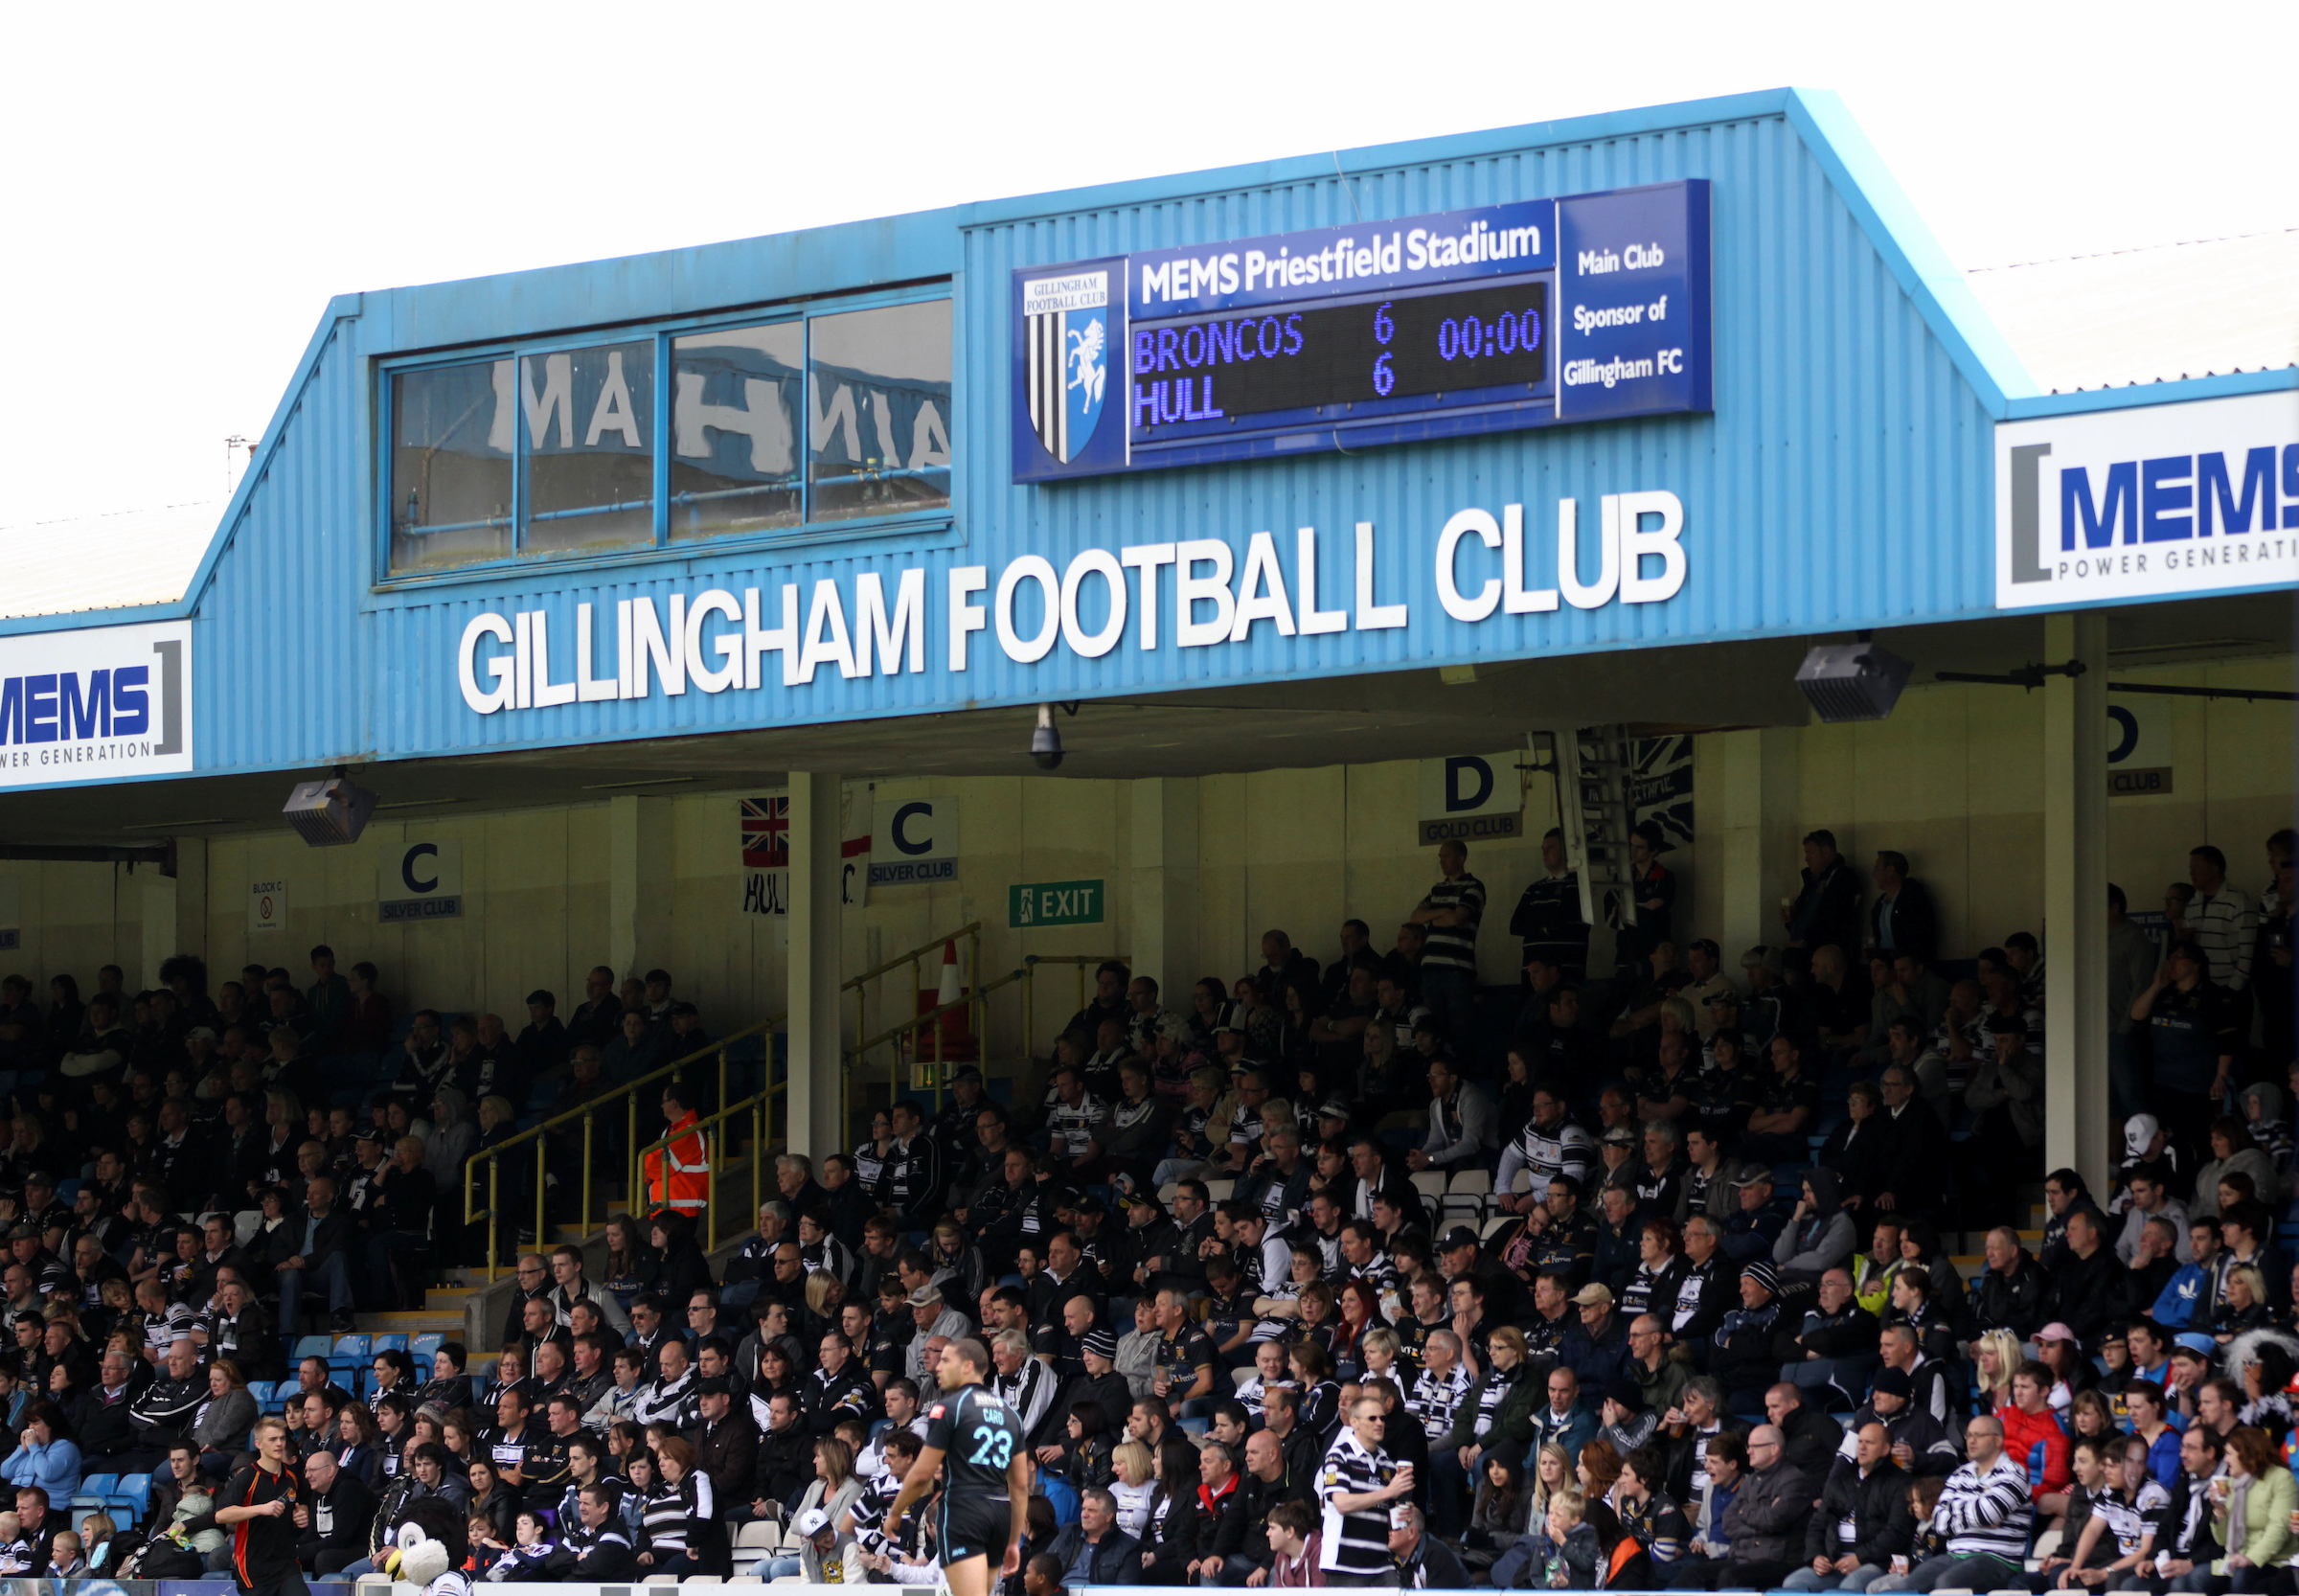 Hull FC went on tour to Gillingham!